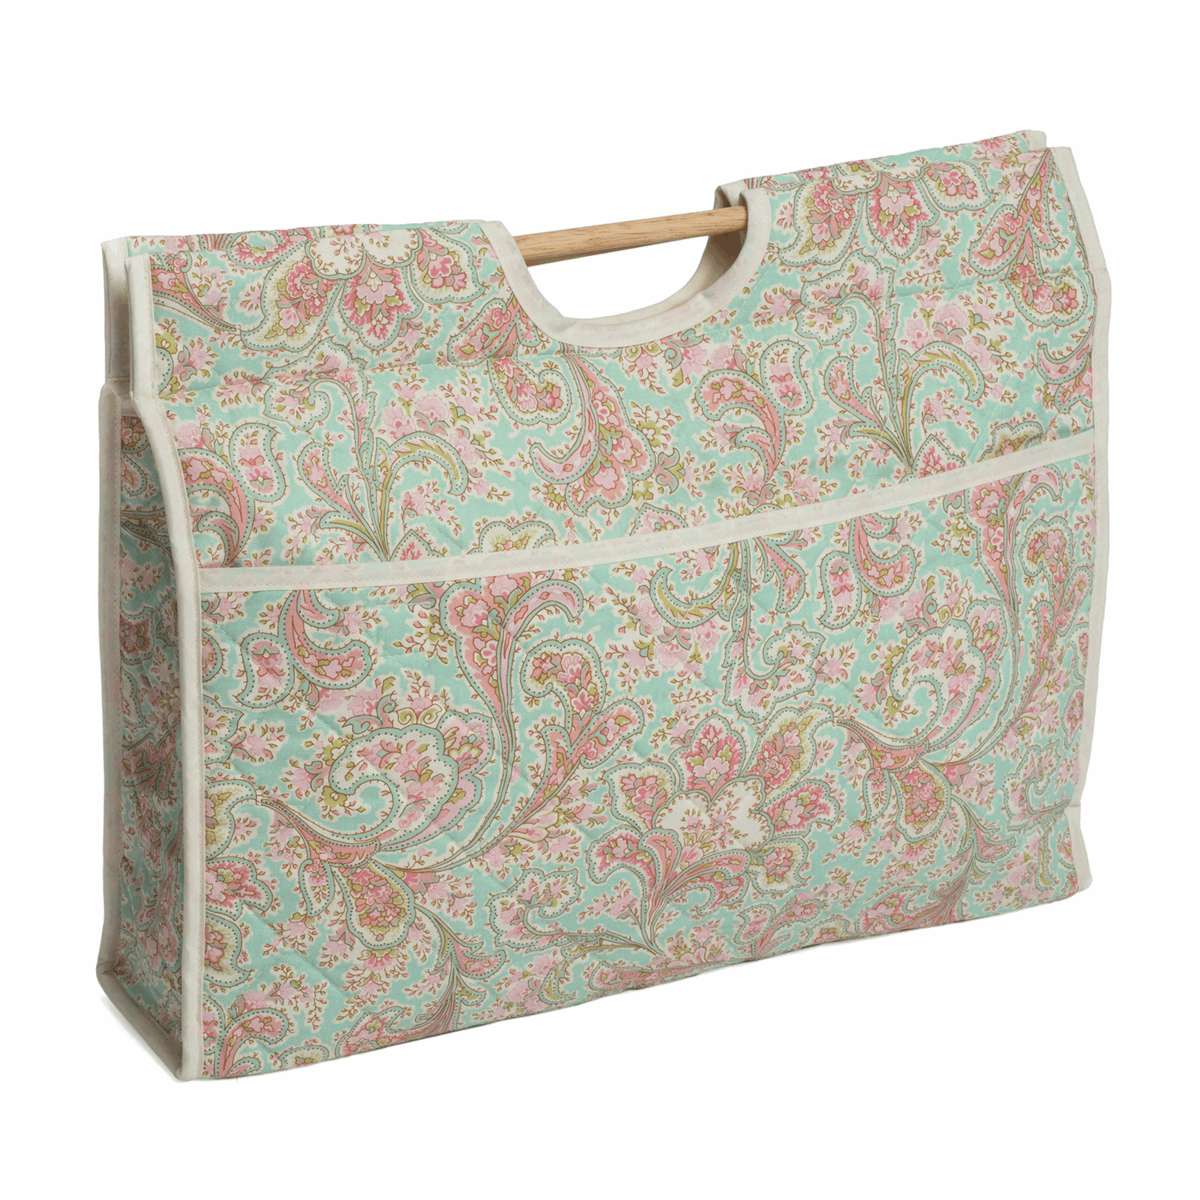 Picture of Craft Bag with Wooden Handles: Paisley